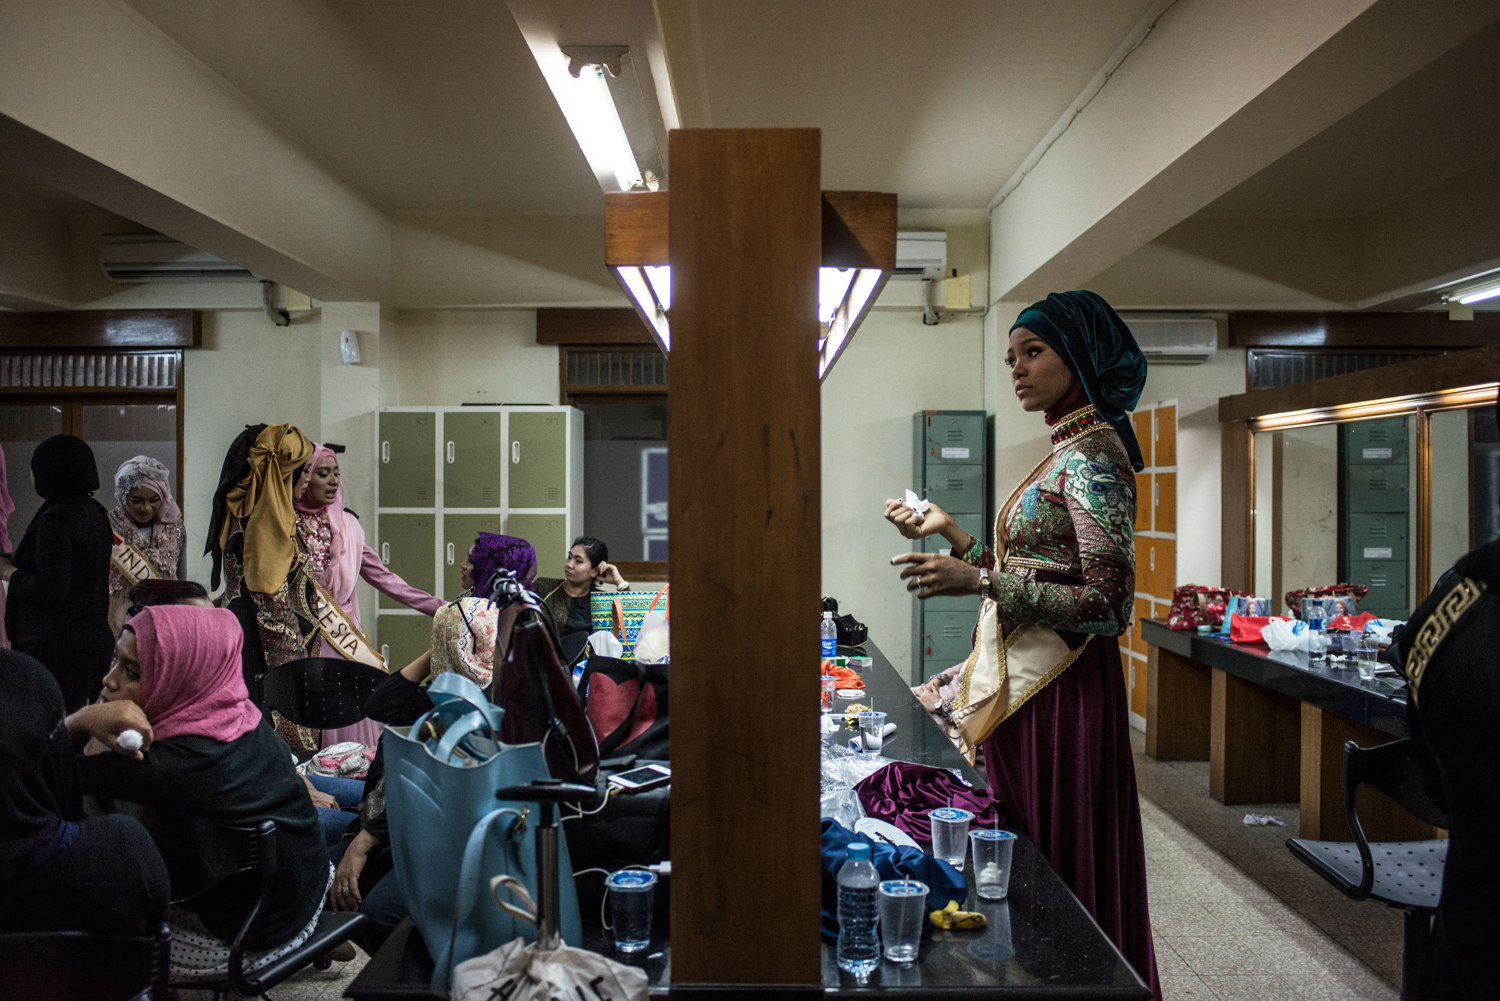 After advancing to the second round, Miss Nigeria, Bilqis Adebayo, drinks water while stylists work on her hijab. The Grand Finale of the Miss Muslimah World Competition on November 21st, 2014 in Yogakarta, Indonesia.